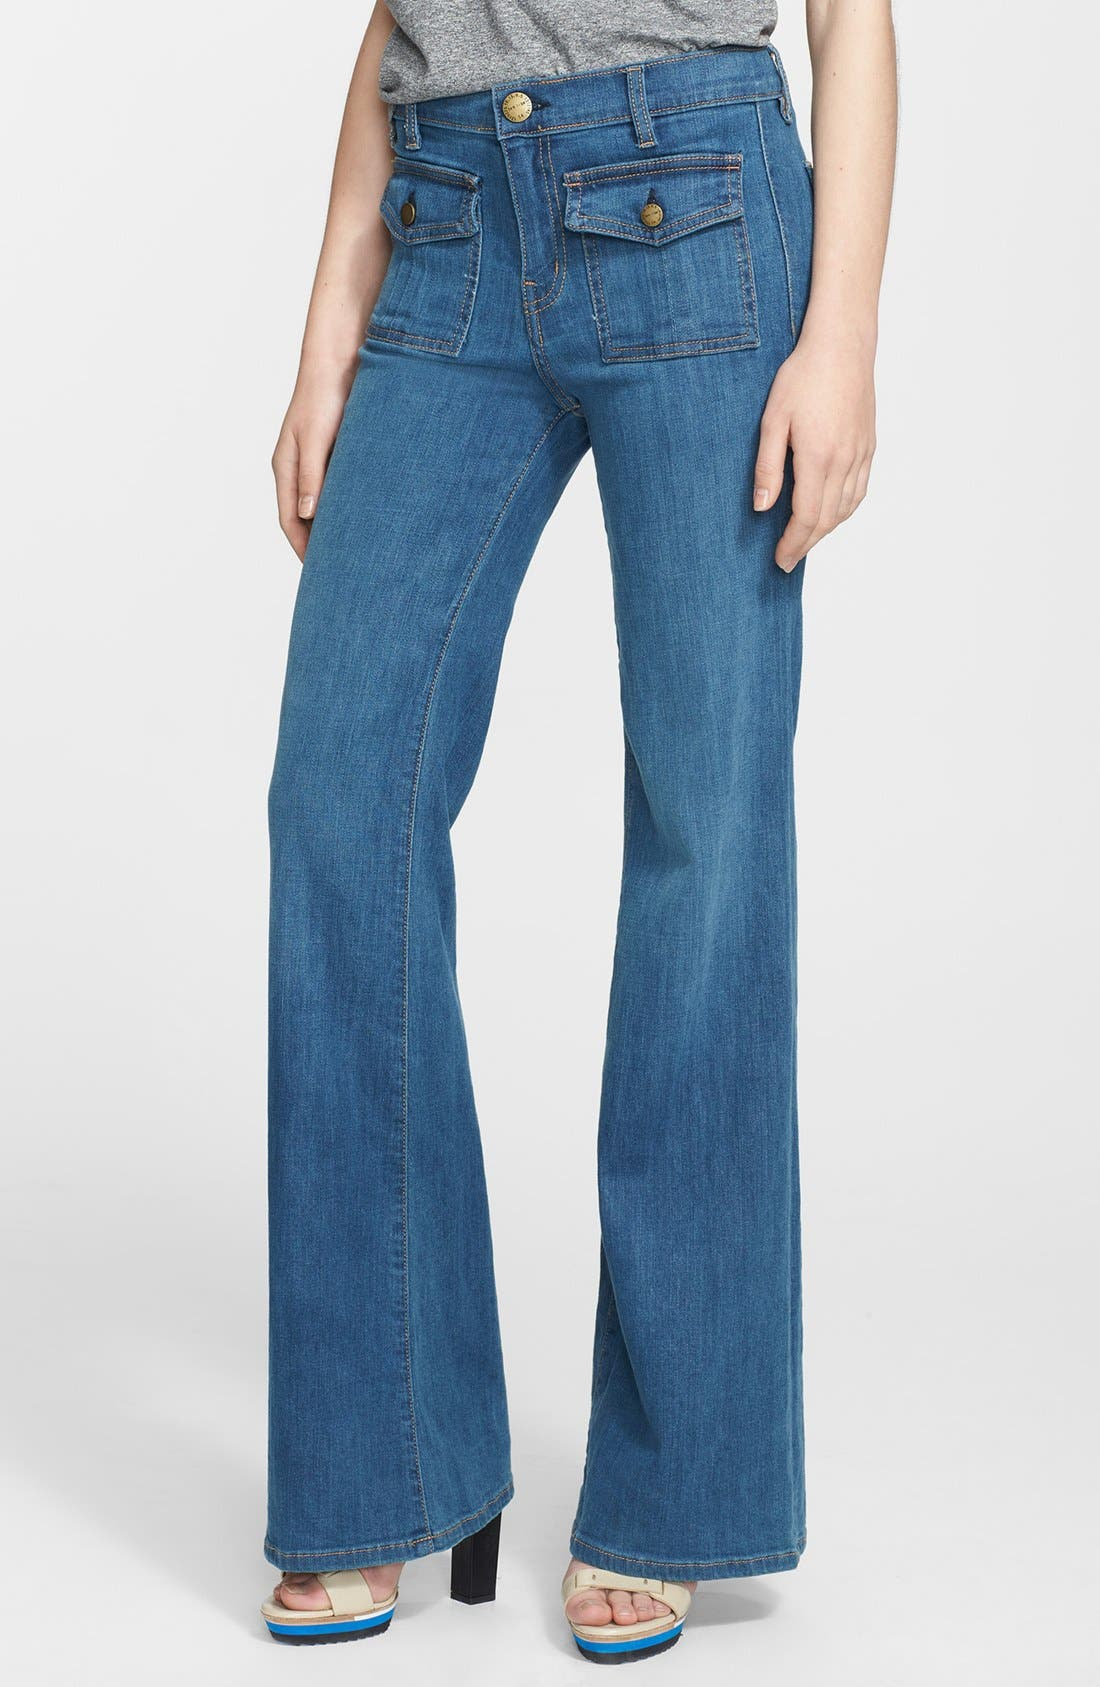 Alternate Image 1 Selected - Current/Elliott 'The Dixie' Wide Leg Jeans (Cooper)